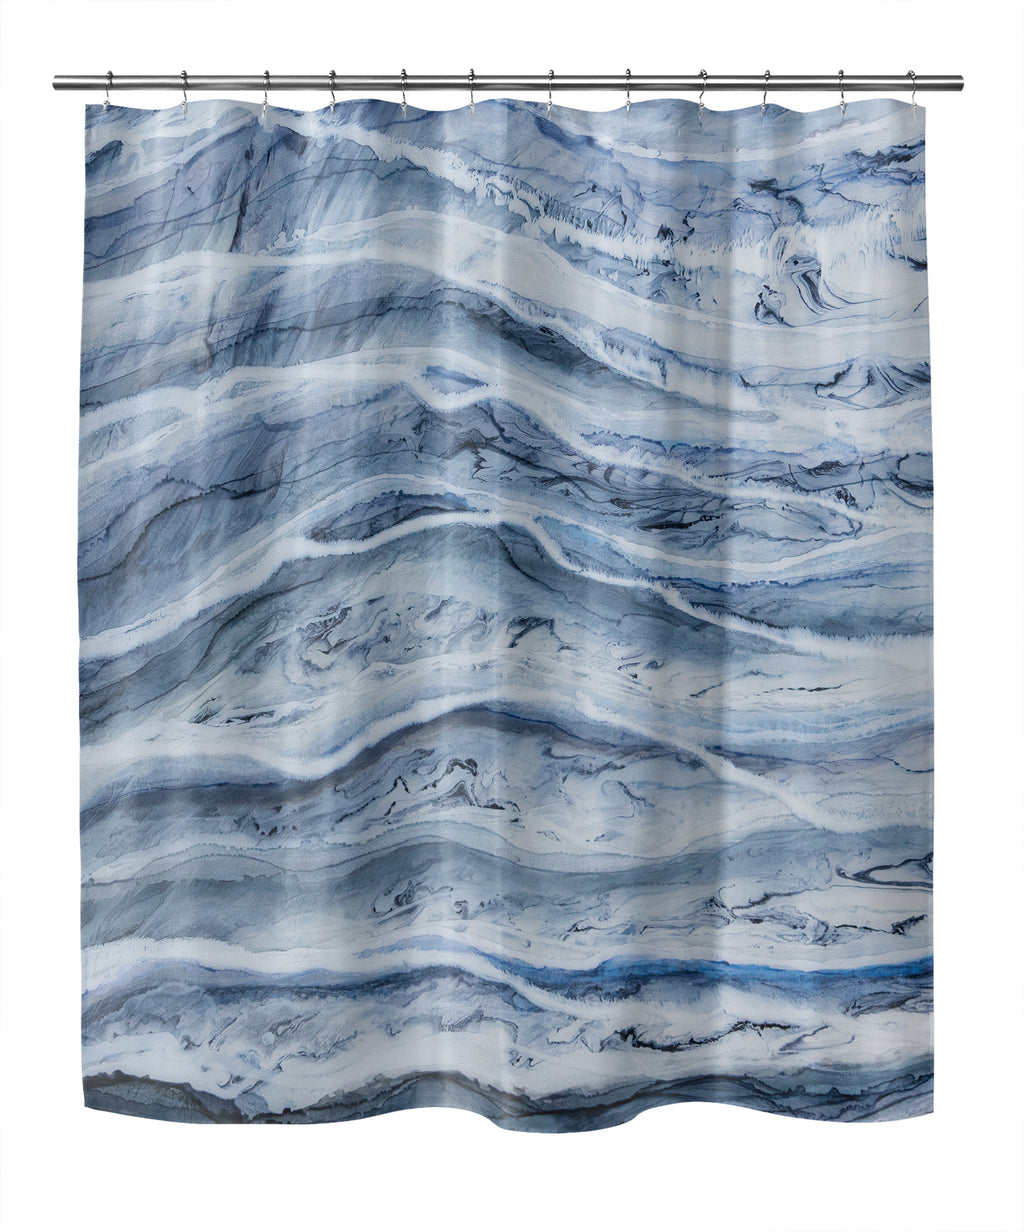 ZEBRA II BOTTOM Shower Curtain By Christina Twomey